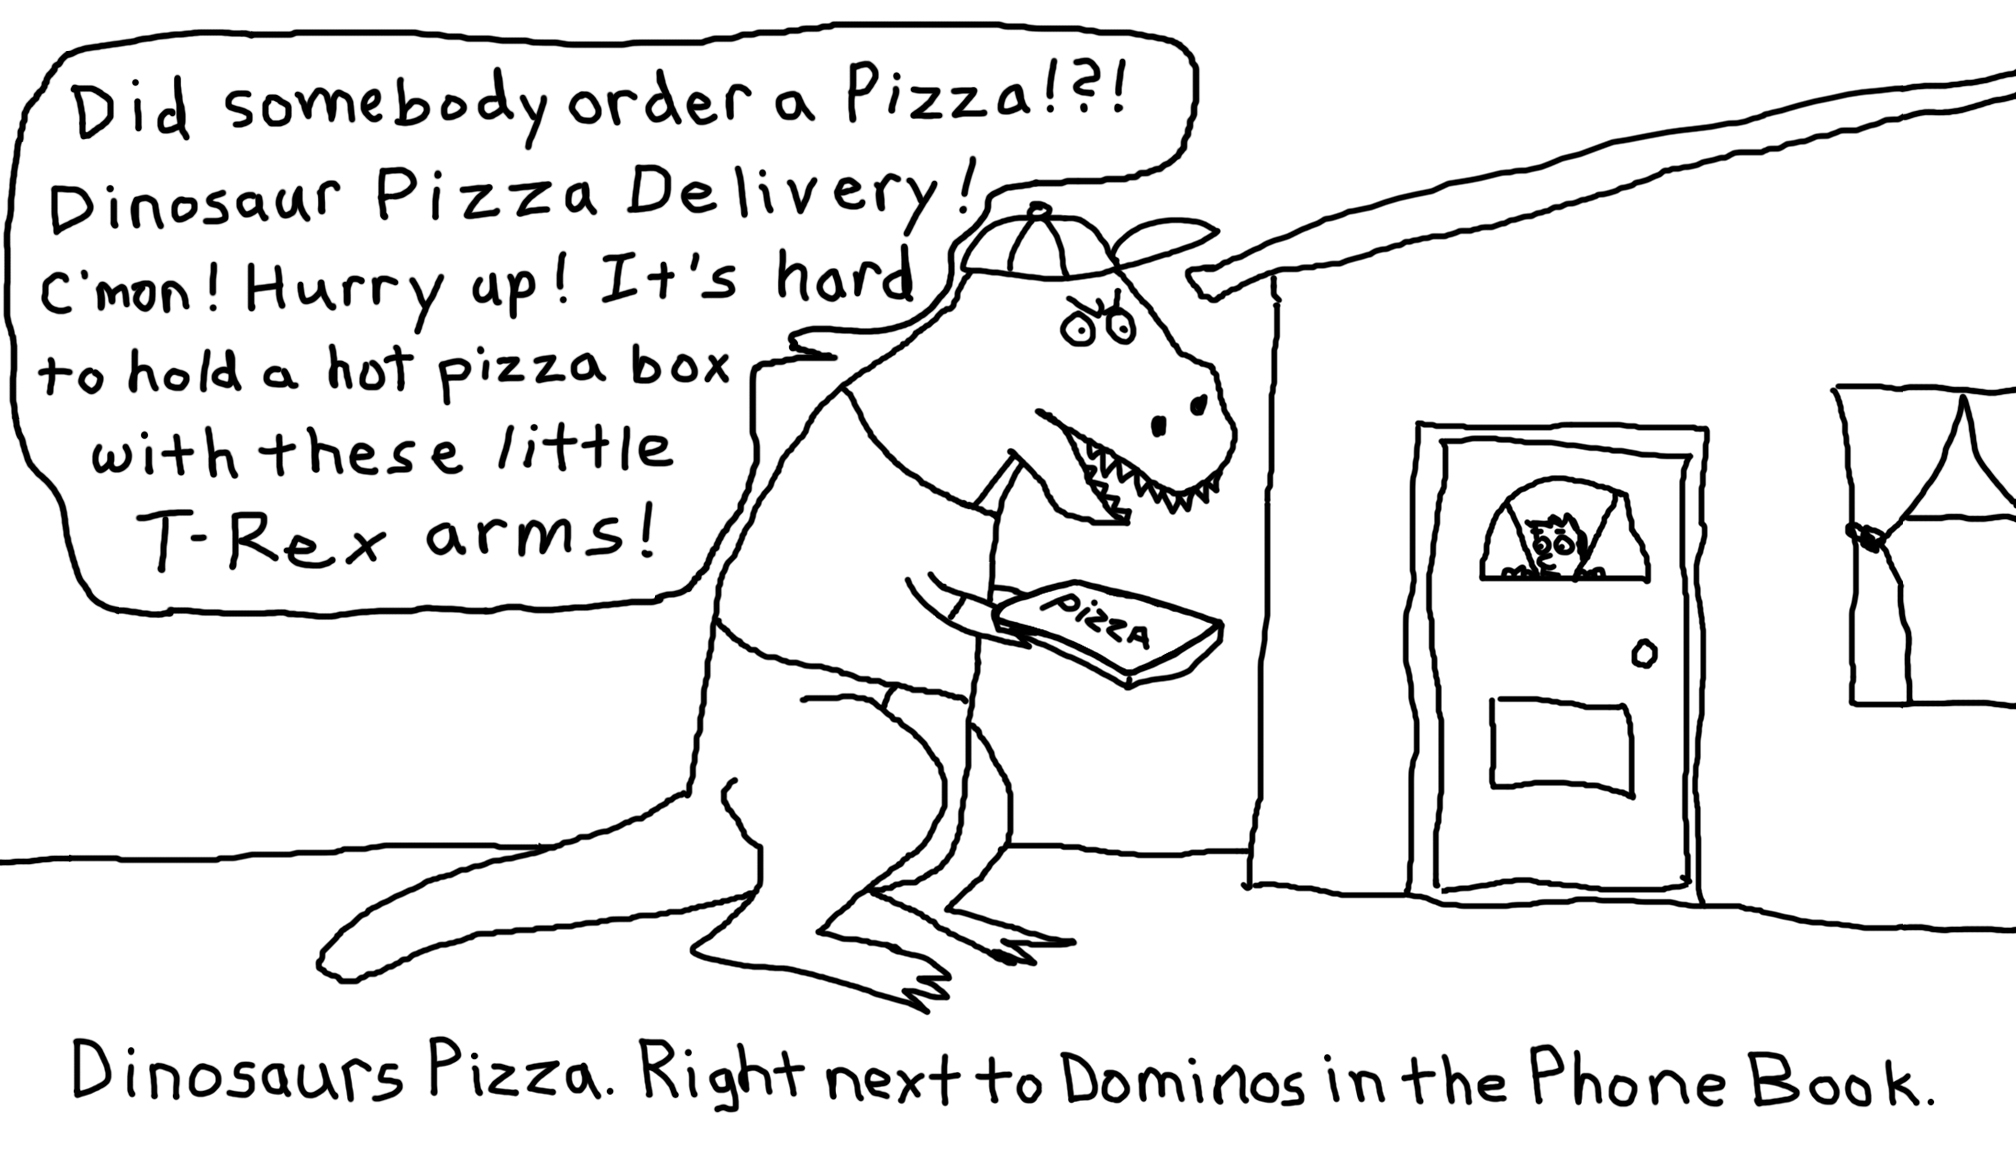 Dinosaur Pizza Delivery.